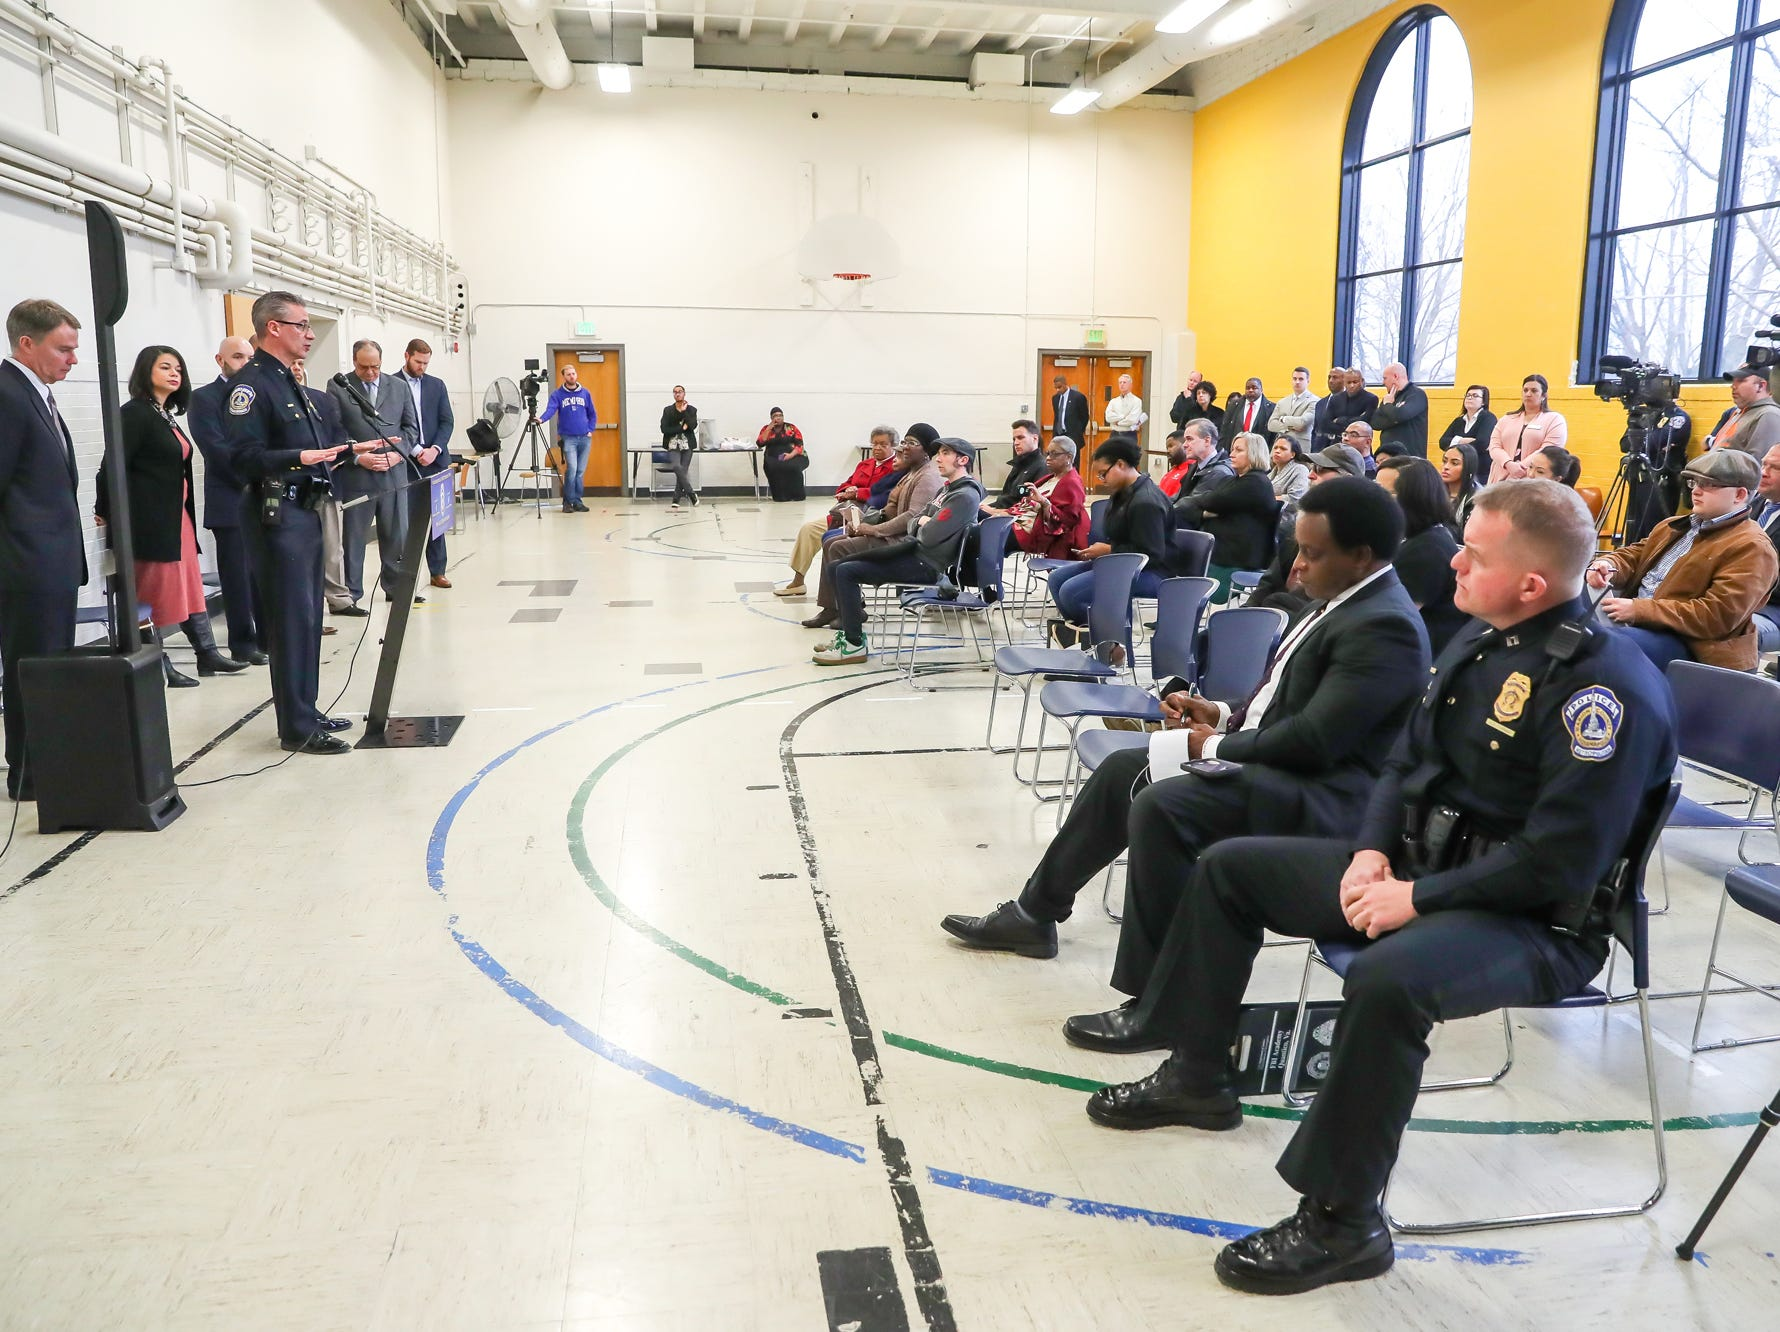 Indianapolis Metropolitan Police Department Chief Bryan Roach talks about the three areas of the city in which officers will test body worn cameras during a press conference held at the Edna Martin Christian Center in Indianapolis on Monday, Feb. 4, 2019. Beat-officers and supervisors in the North, East and Southeast districts will test the products during the trial period.